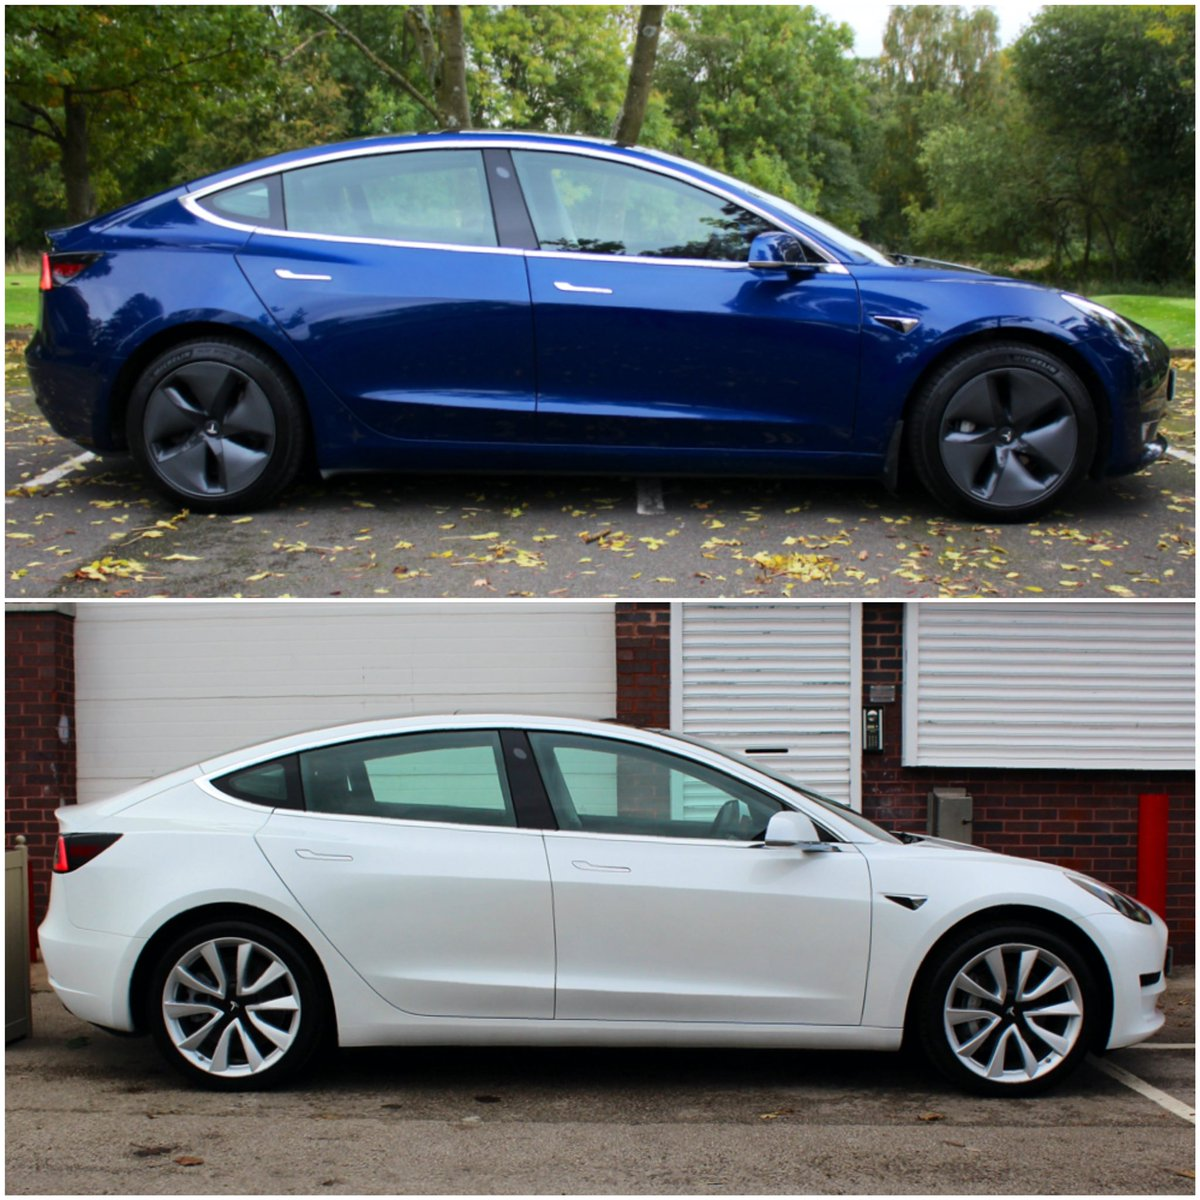 Two stunning Tesla's available in stock   2019/69 Tesla model 3 LR in Midnight Blue - £43,950 or from £401** per month (PCP)  2020/20 Tesla Model 3 SR in Pearl white - £40,495 or from £370** per month (PCP)  Enquire today!  #teslatuesday #tesla #teslamodel3 https://t.co/5Nb2j8IUQC